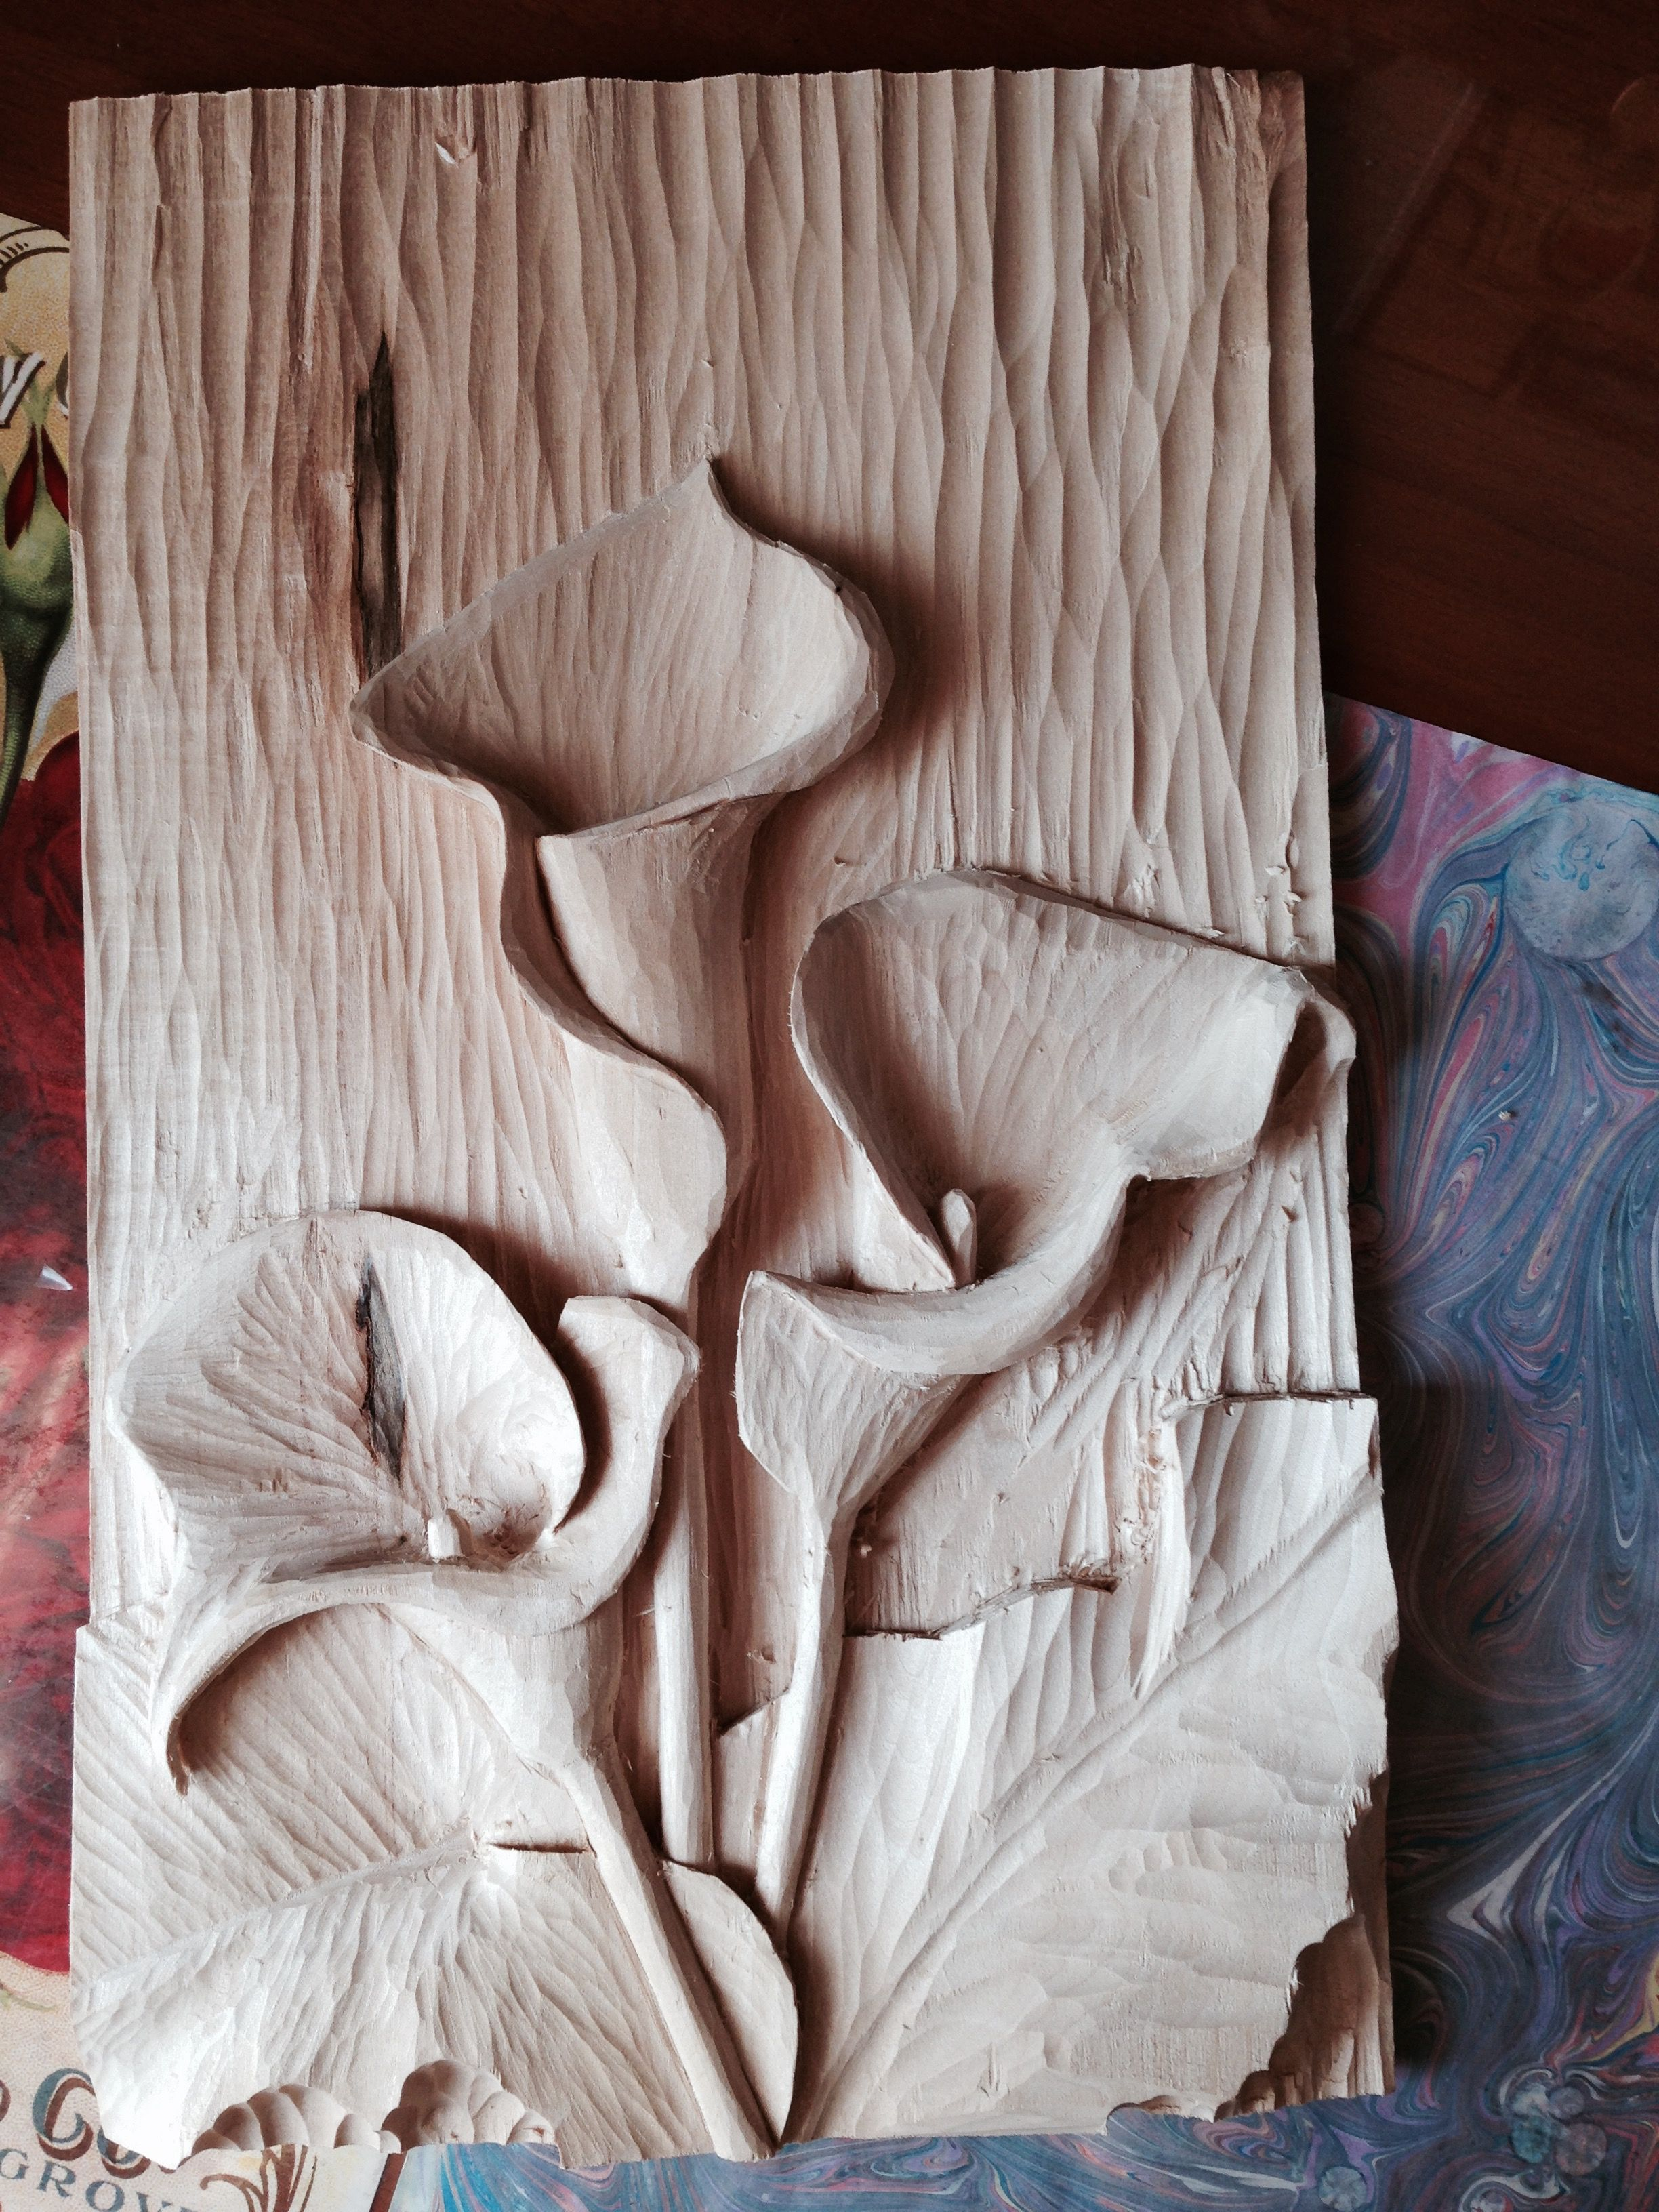 Align the grain for impressive carvings woodcarving illustrated